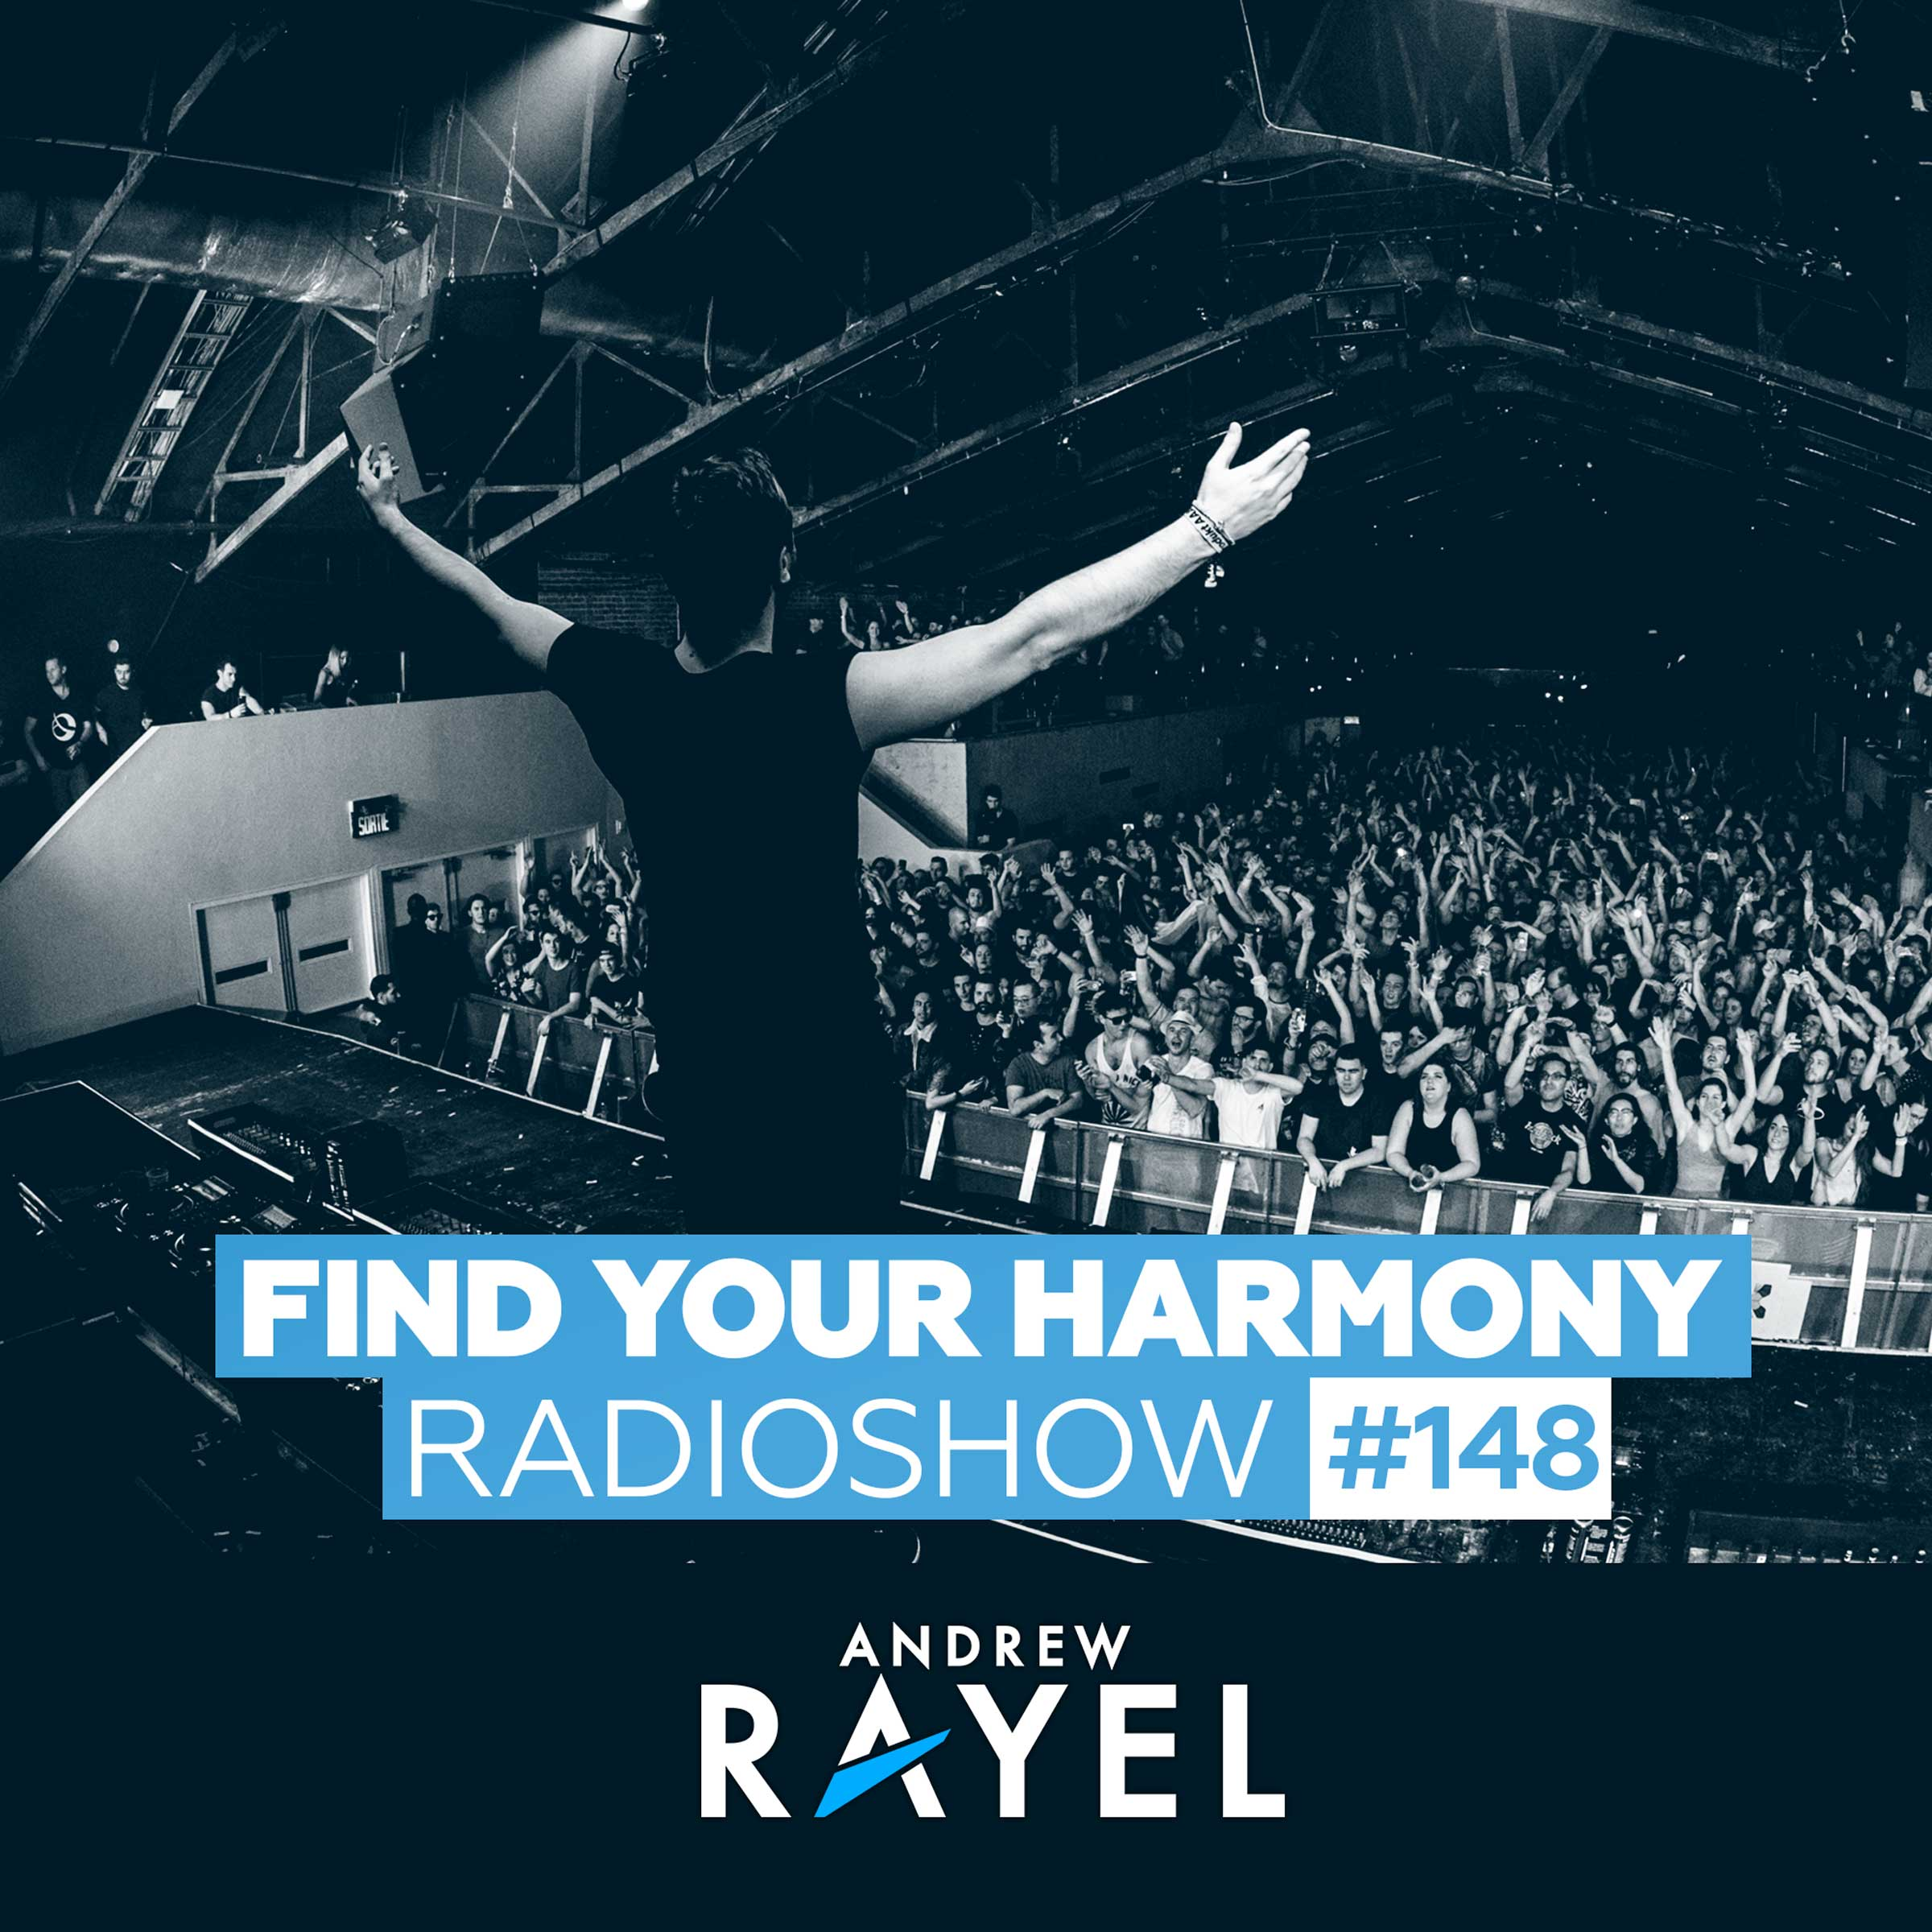 Find Your Harmony Radioshow #148